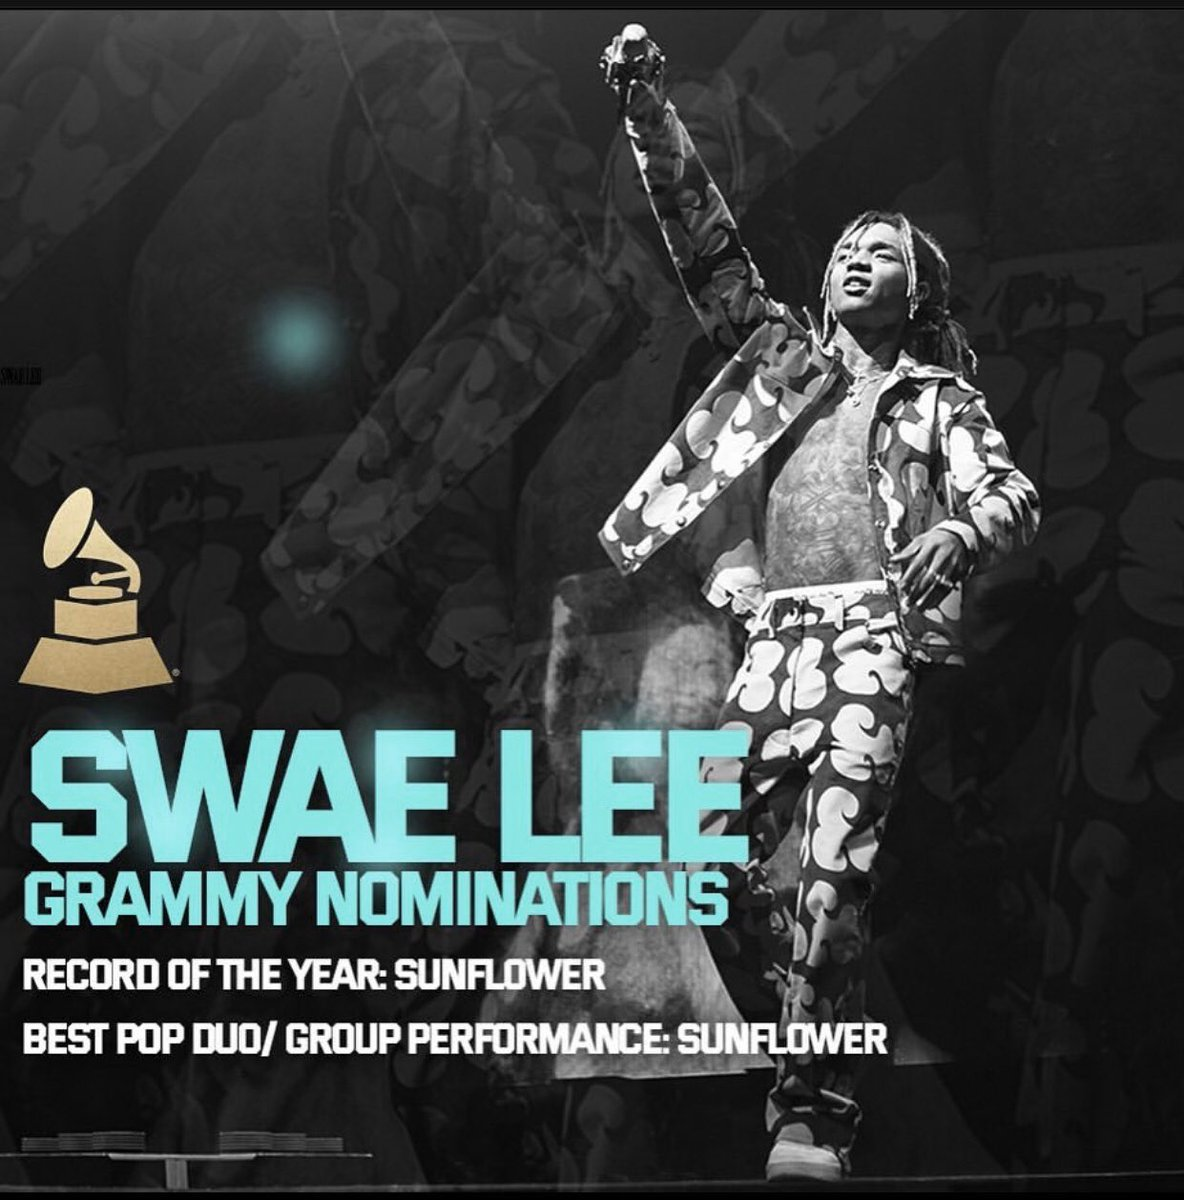 Woke up to this 🏆 thanks for the Grammy nominations